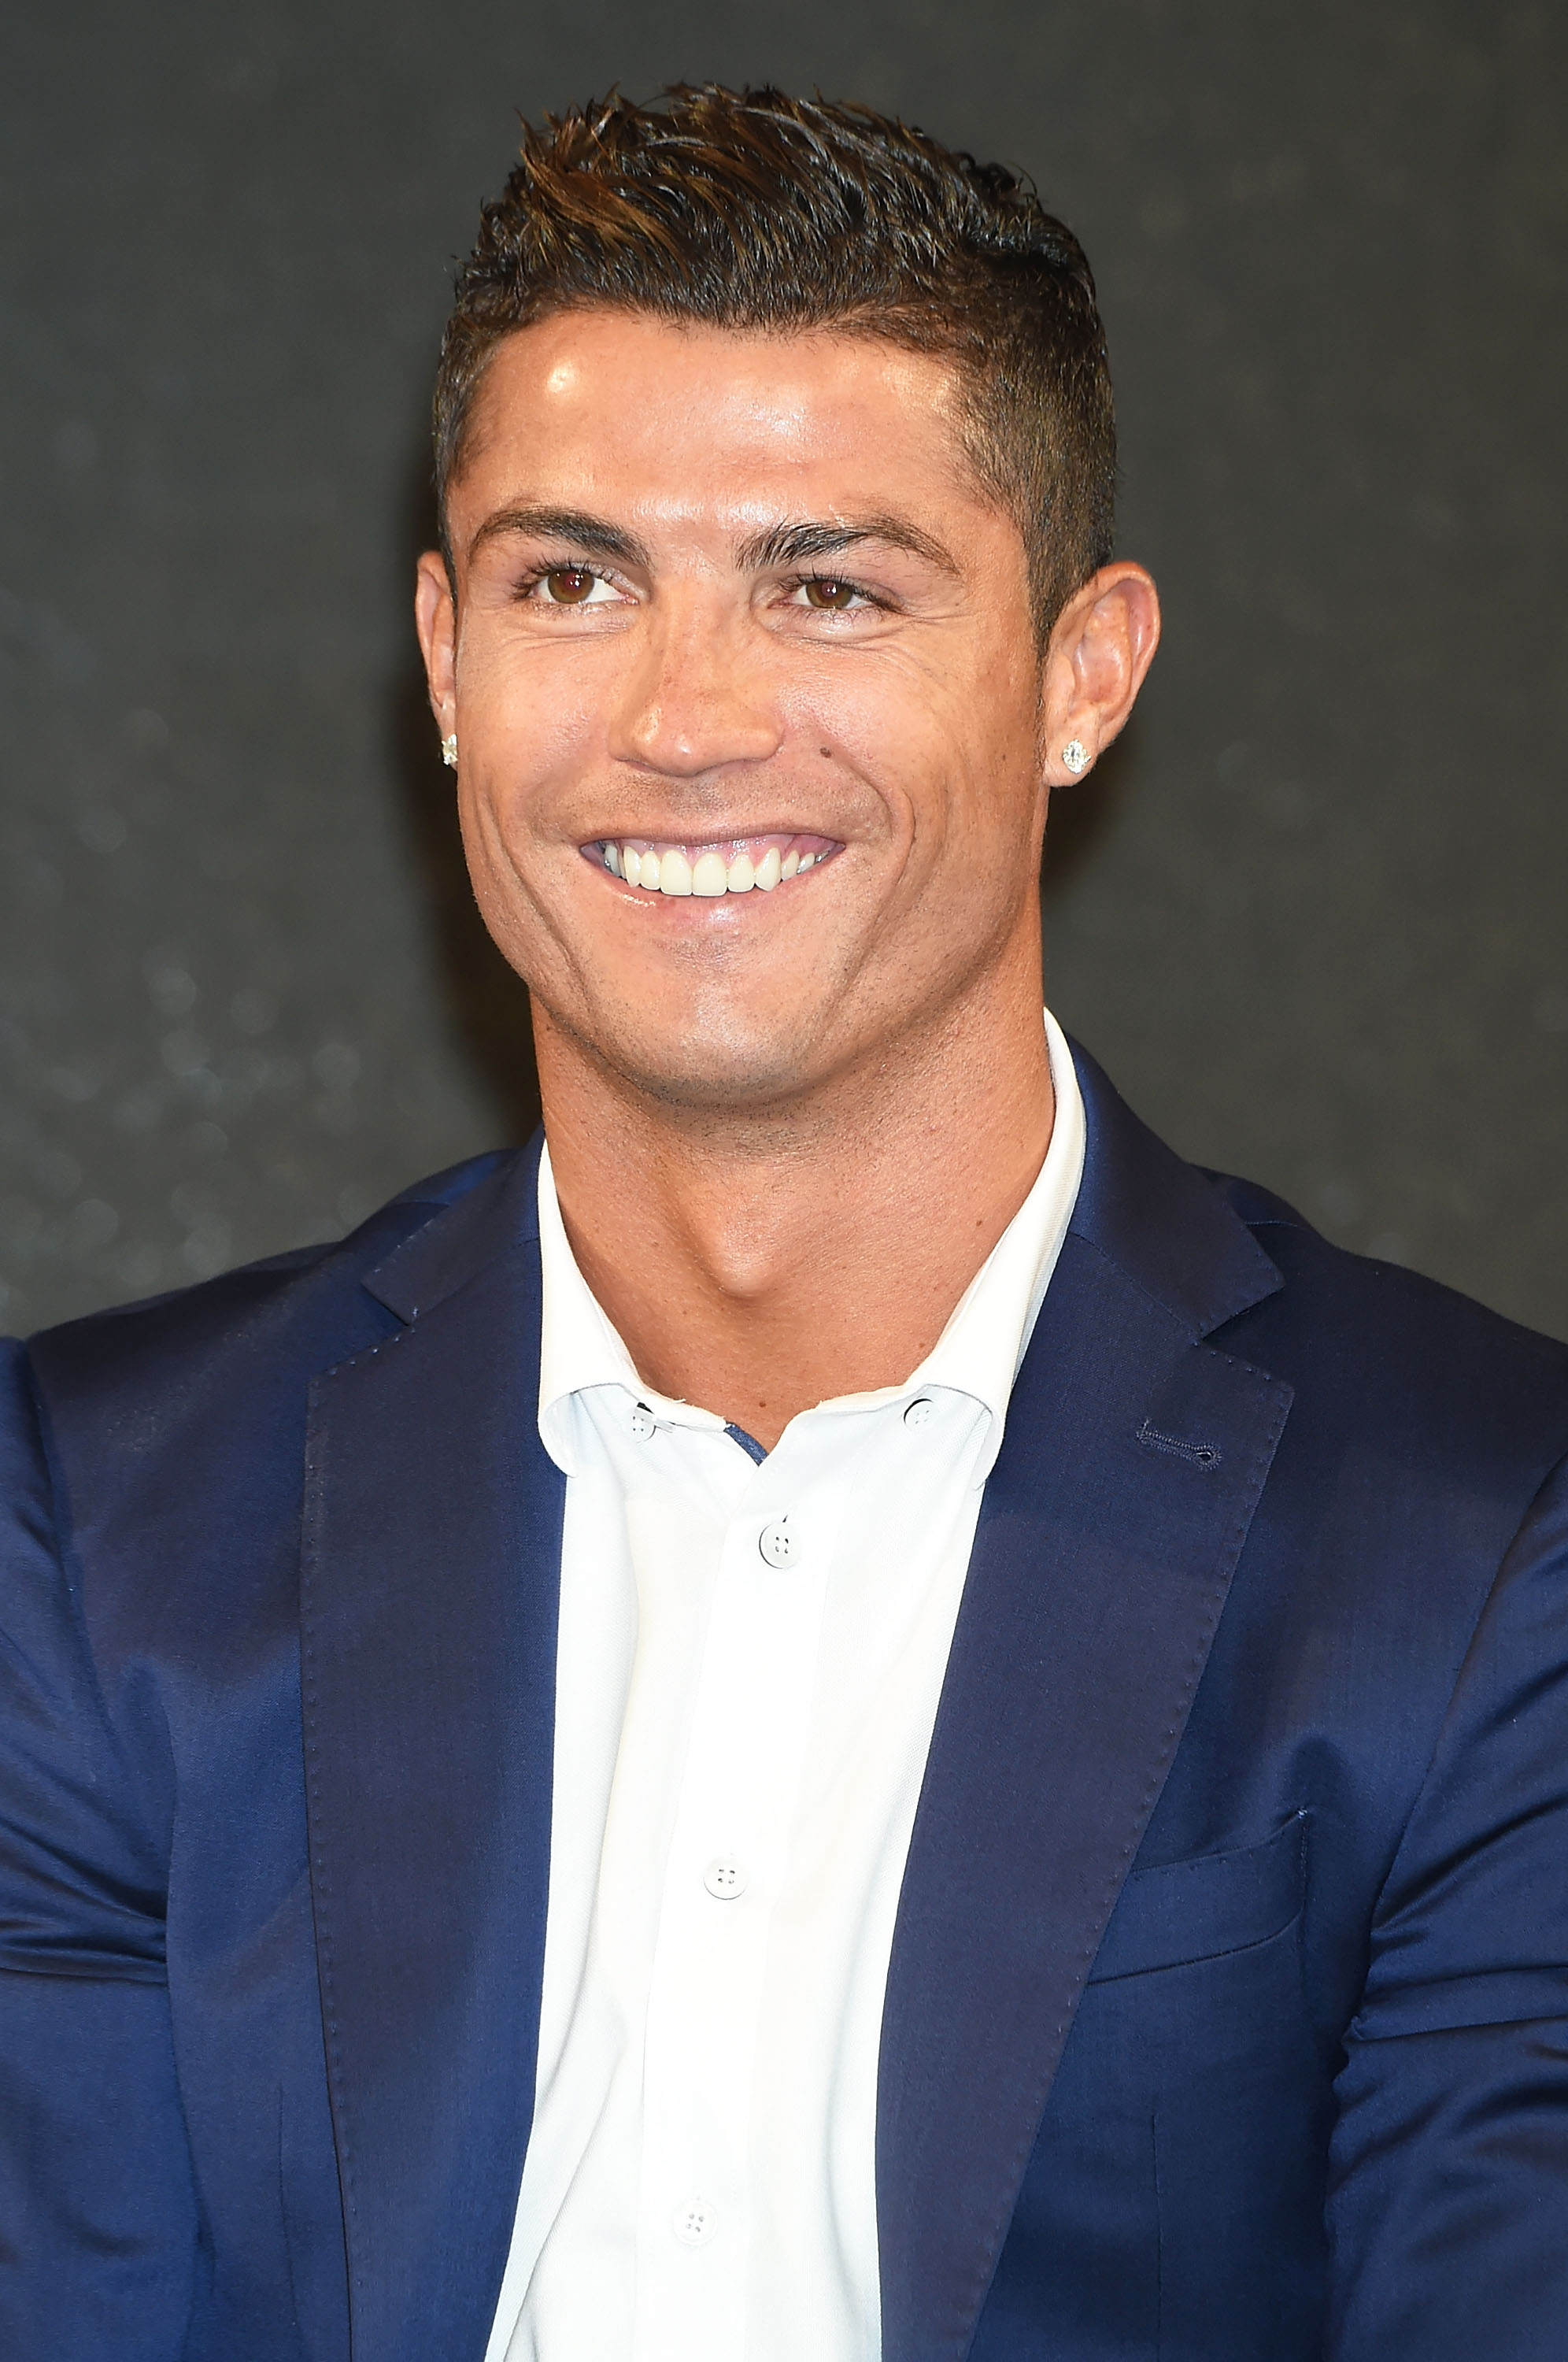 Cristiano Ronaldo during a press conference on July 7, 2015 in Tokyo, Japan.